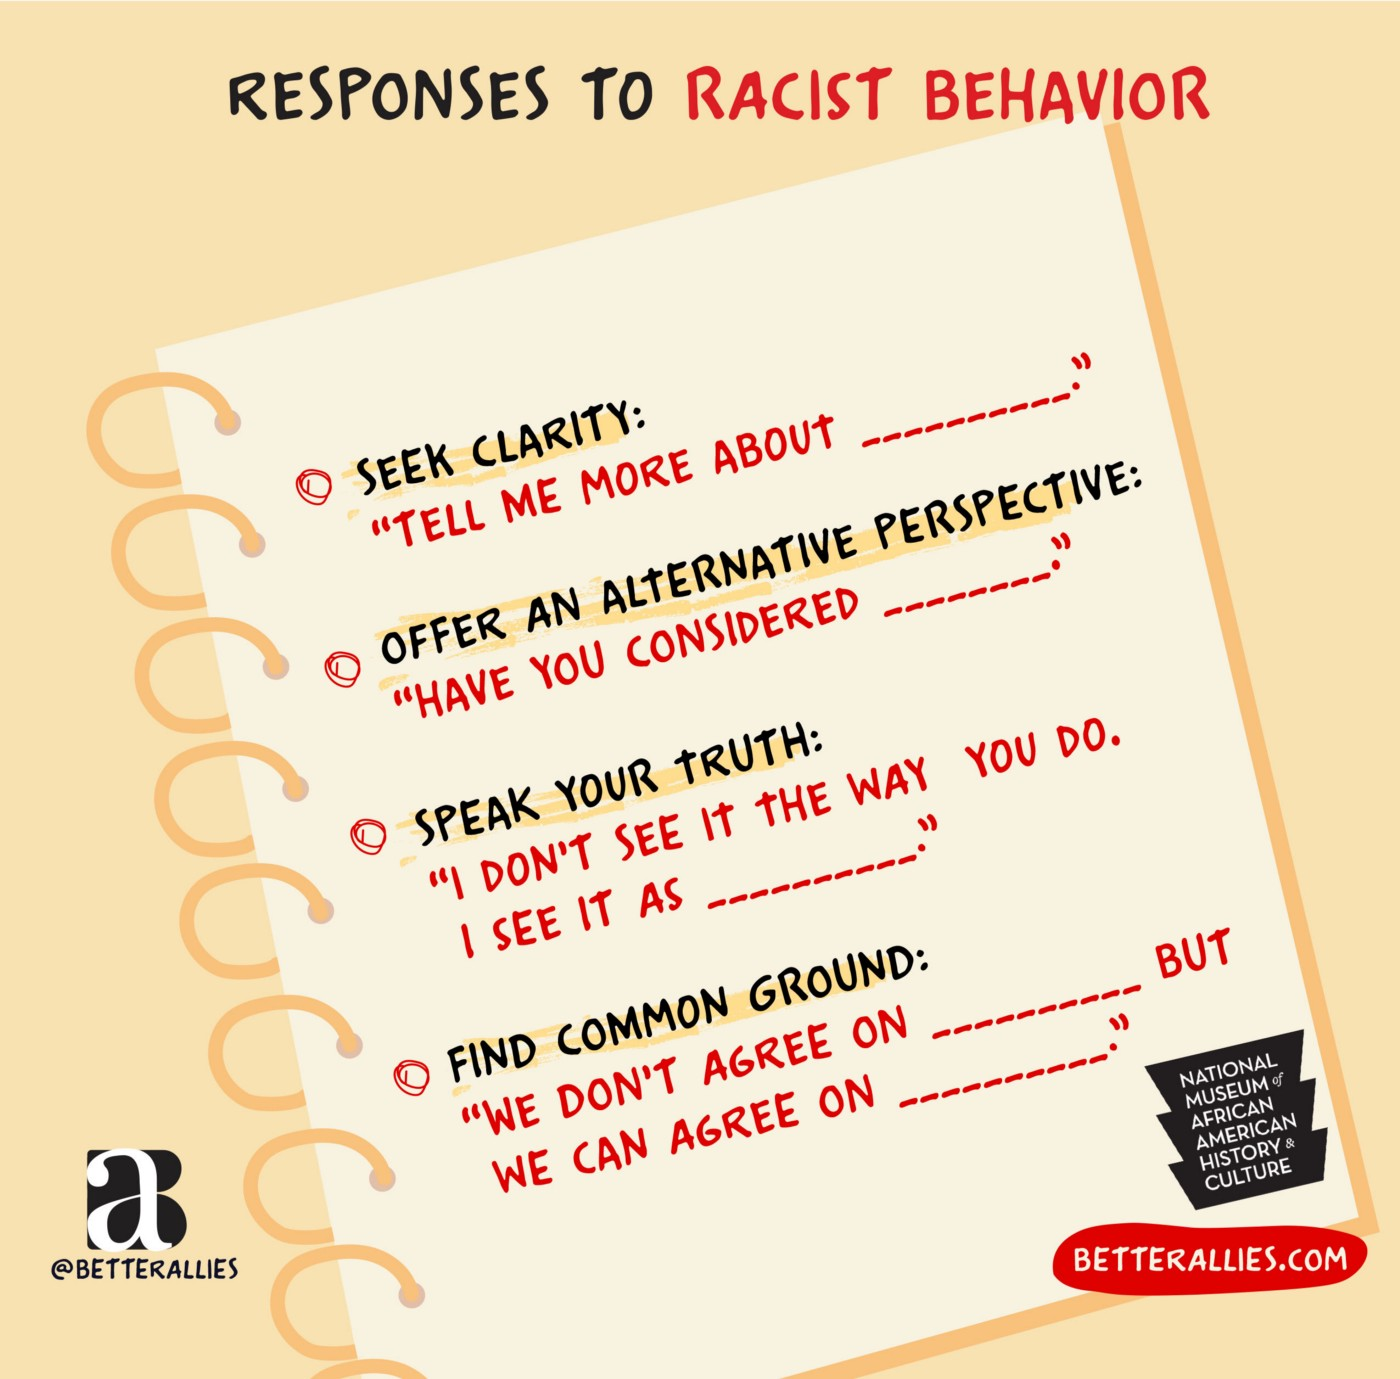 """Illustration titled Responses to Racist Behavior. There is a spiral notebook page with 4 points. Seek clarity: """"Tell me more about __."""" Offer an alternative perspective: """"Have you ever considered __."""" Speak your truth: """"I don't see it the way you do. I see it as __."""" Find common ground: """"We don't agree on __ but we can agree on __."""" The page has the National Museum of African American History & Culture. In the lower corners are the better allies logo and a red bubble with betterallies.com."""